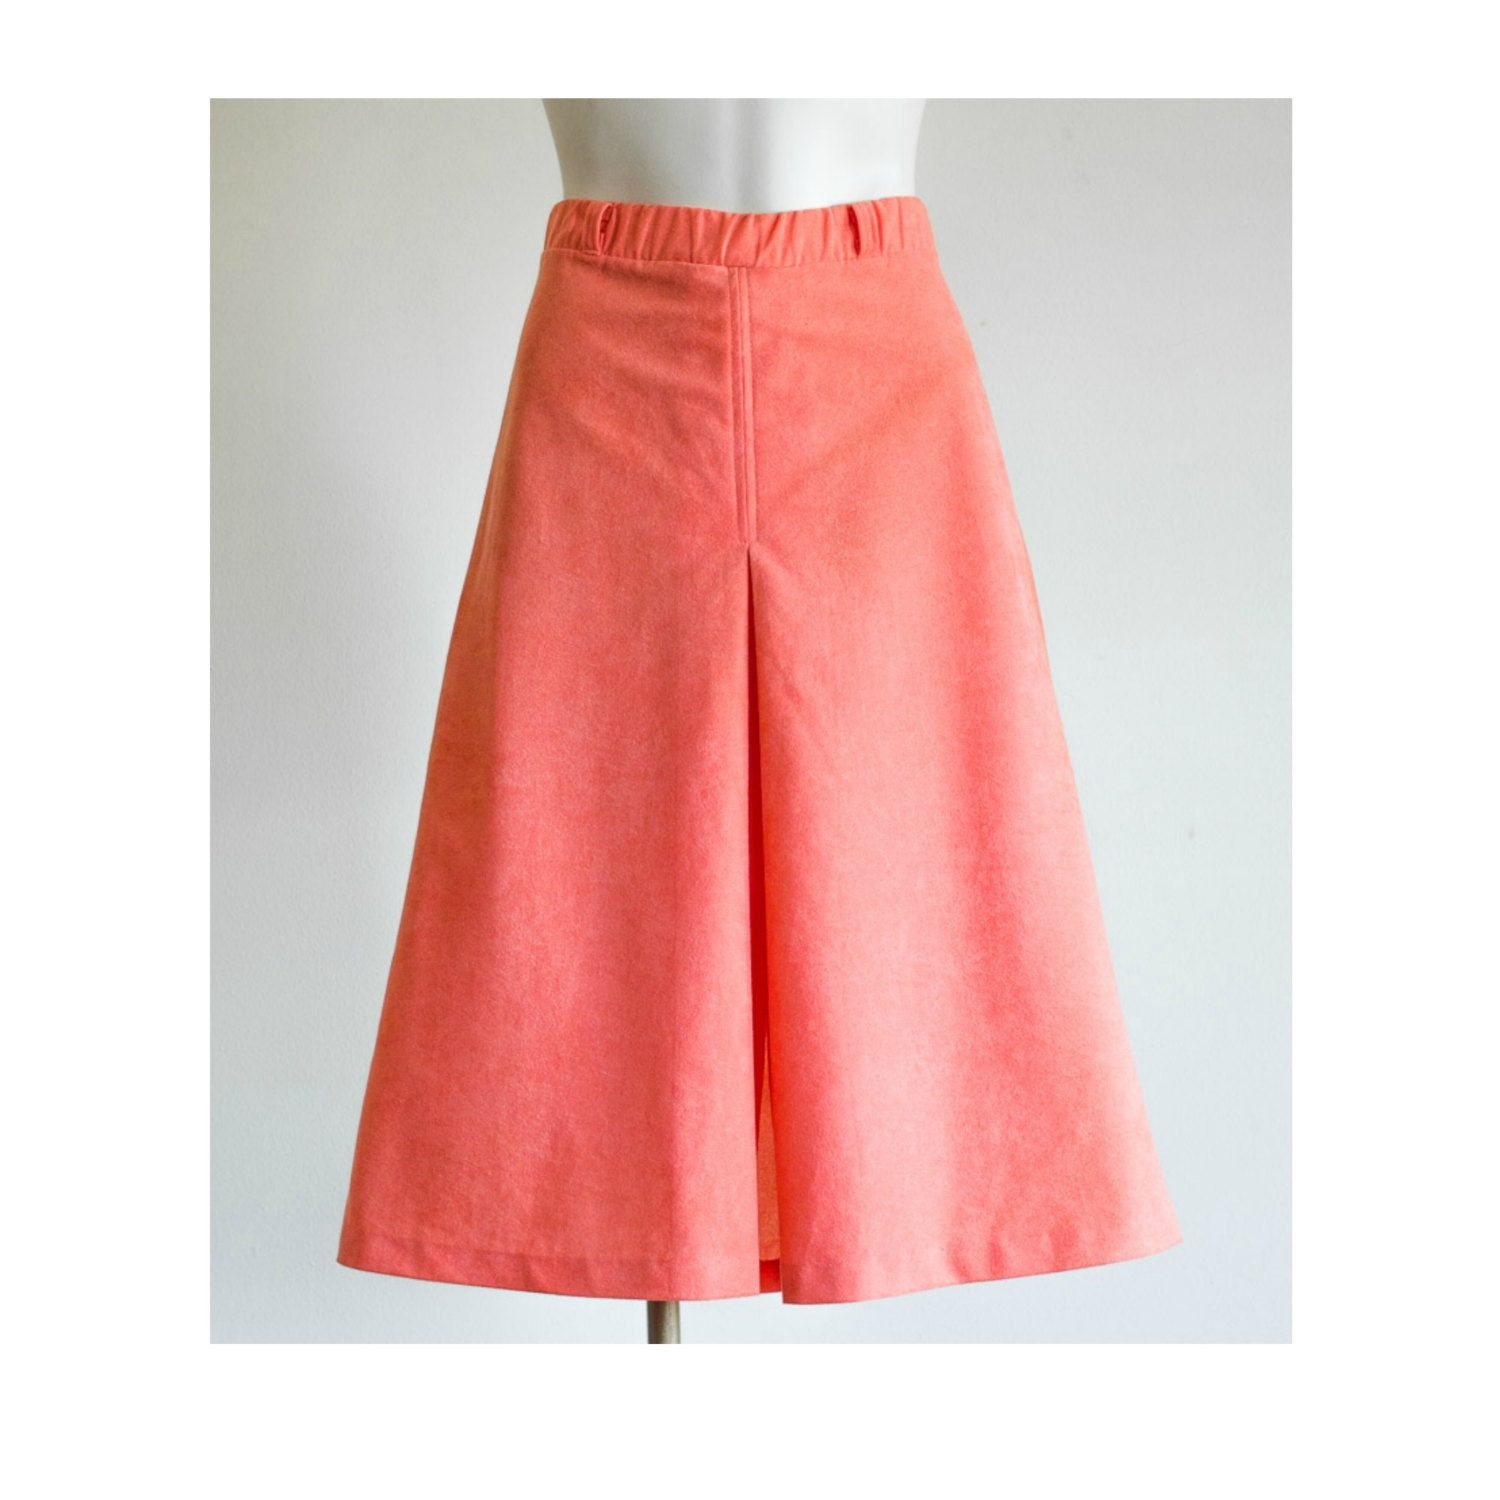 1970s coral a-line midi skirt by TimeTravelFashions on Etsy